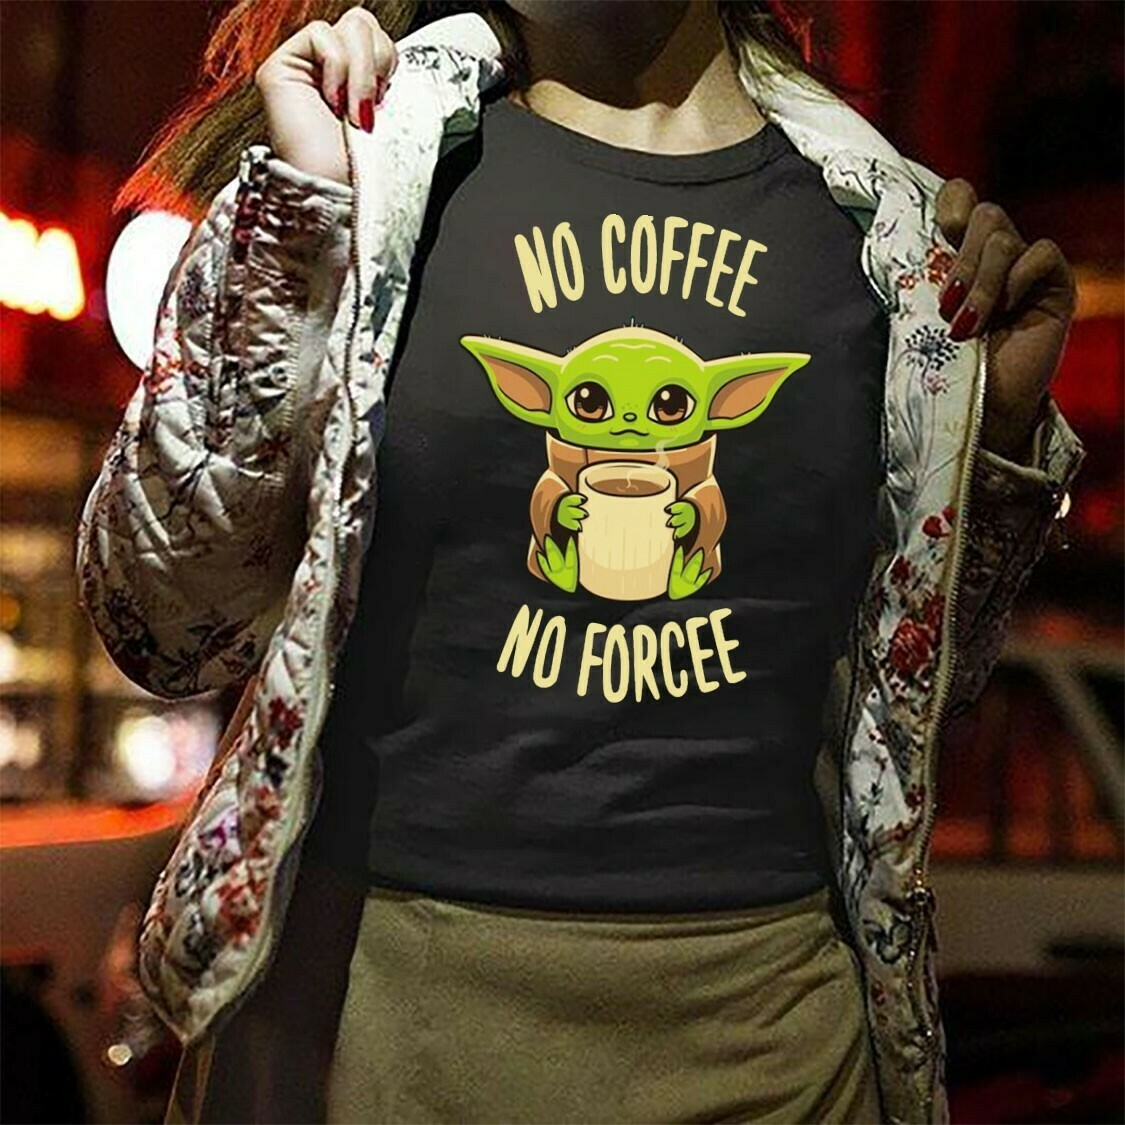 No Coffee No Forcee Baby Yoda Mandalorian Star Wars Kawaii King Boba Fett Lion King Pride Rock Mandalorian Funy Gifts Noel Party T-Shirt Long Sleeve Sweatshirt Hoodie Jolly Family Gifts